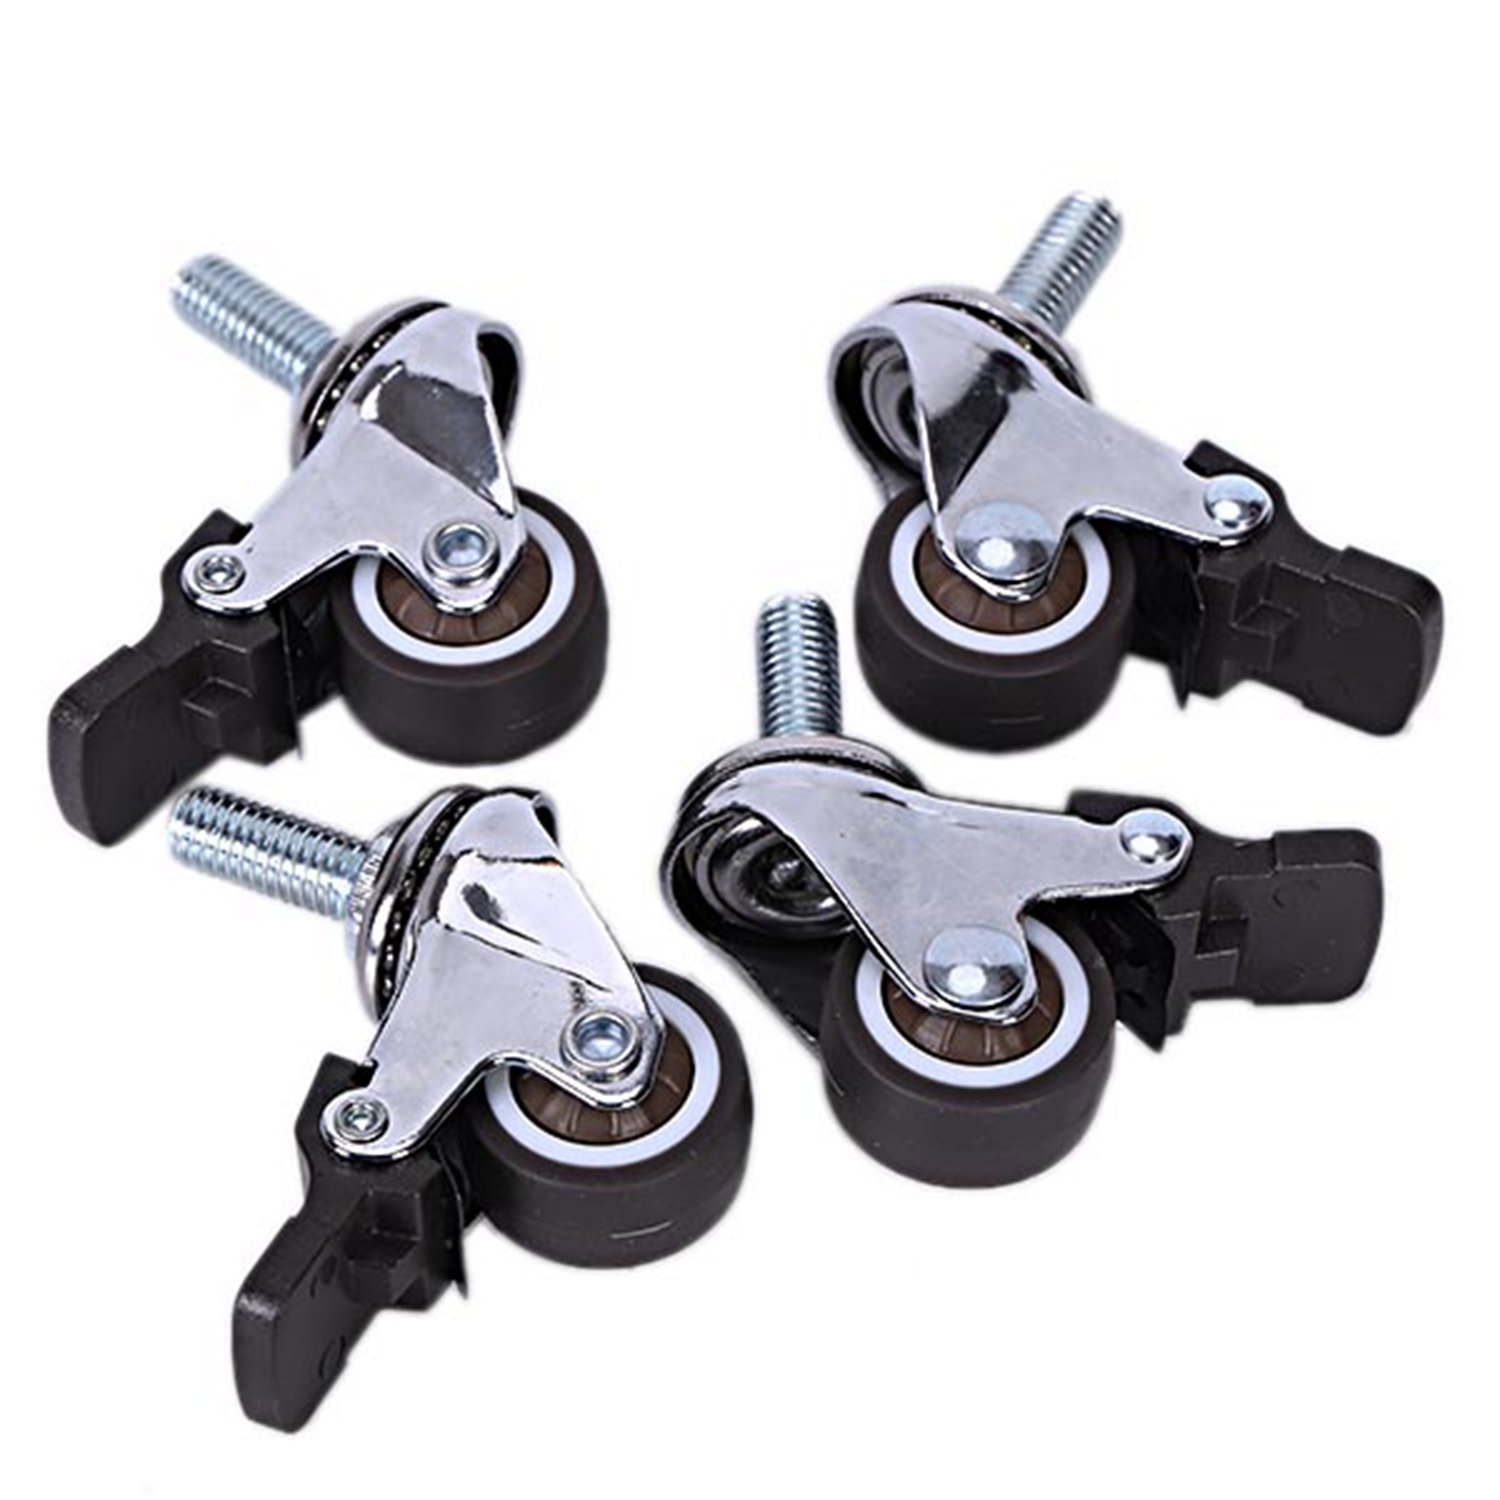 4Pcs Mini Small Casters Silent Wheels With Brake Universal Casters Wheel For Furniture Bookcase Drawer 1 Inch M8X15Mm Tpe 4Pcs Mini Small Casters Silent Wheels With Brake Universal Casters Wheel For Furniture Bookcase Drawer 1 Inch M8X15Mm Tpe